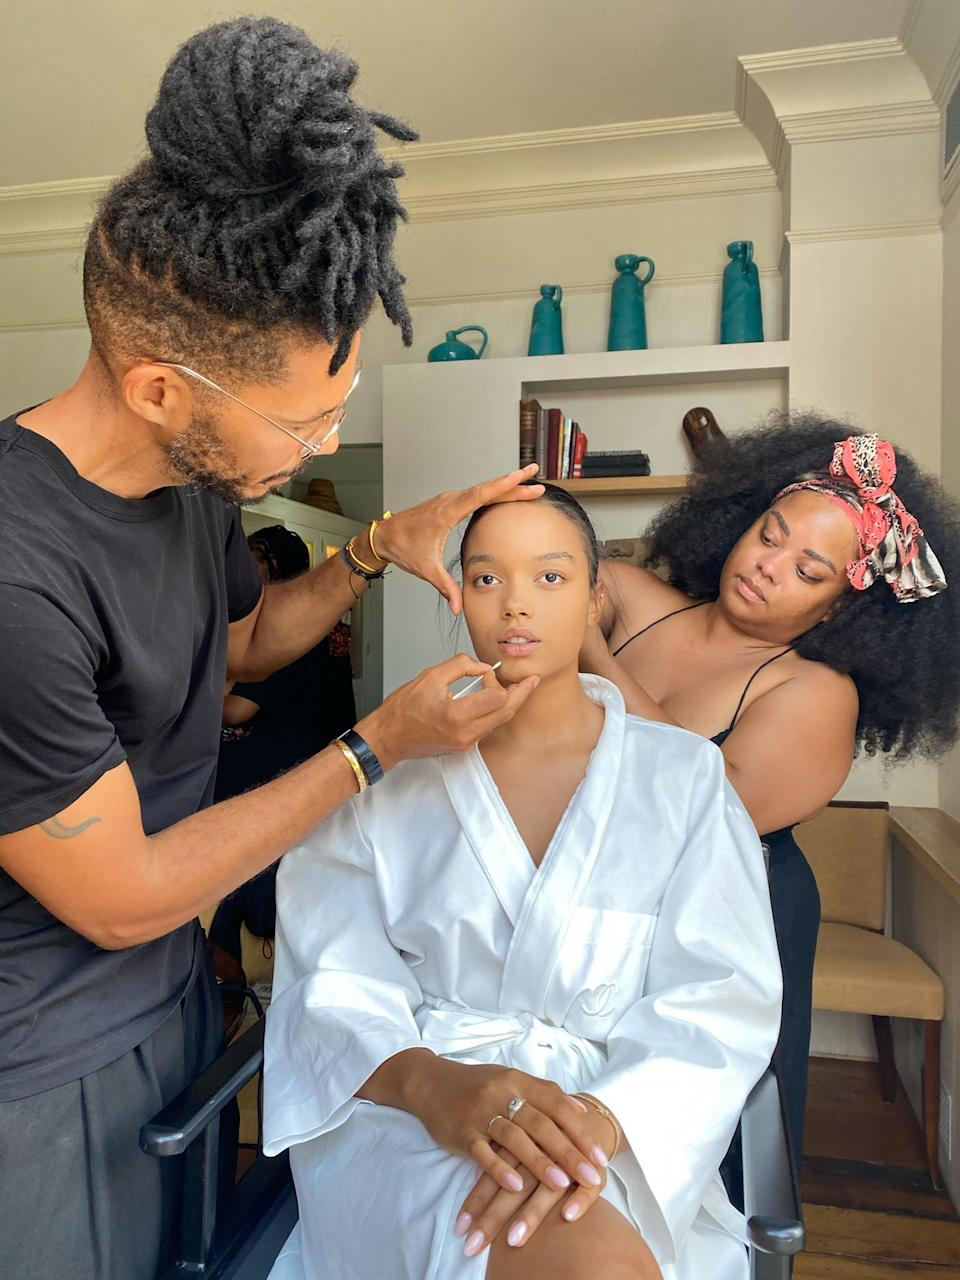 My glam team Naeemah and Tyron are working their magic on my hair and makeup. Their energy is so calming and their vibe so fun; it makes such a positive difference when getting ready and spending time in glam.